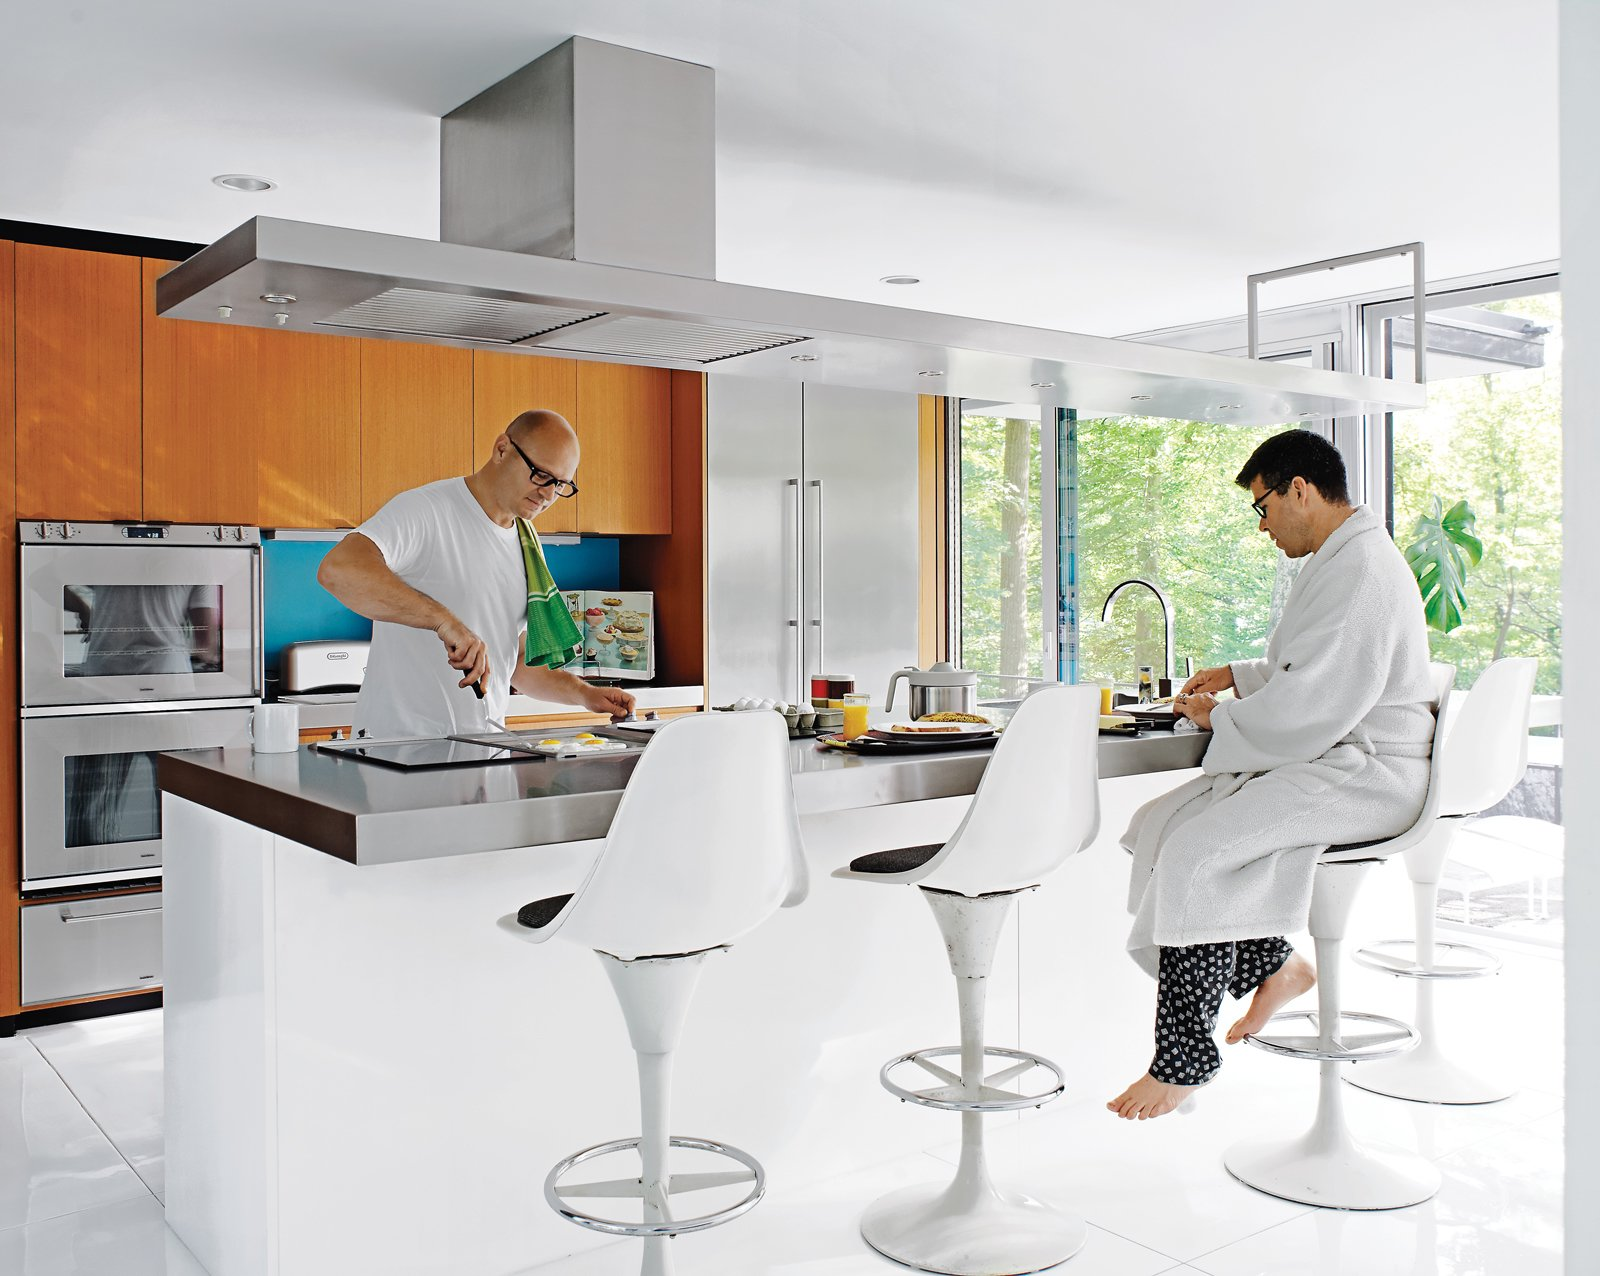 Despite their fidelity to the original structure, the residents made small changes, notably in the kitchen: The wood-veneered island was moved to create more circulation space behind it and finished in white lacquer and stainless steel. Wood cabinetry above the island was exchanged for a steel ventilation unit. Tagged: Kitchen, Metal Counter, Wall Oven, Range Hood, Refrigerator, and Wood Cabinet.  Photo 11 of 17 in Mod Men